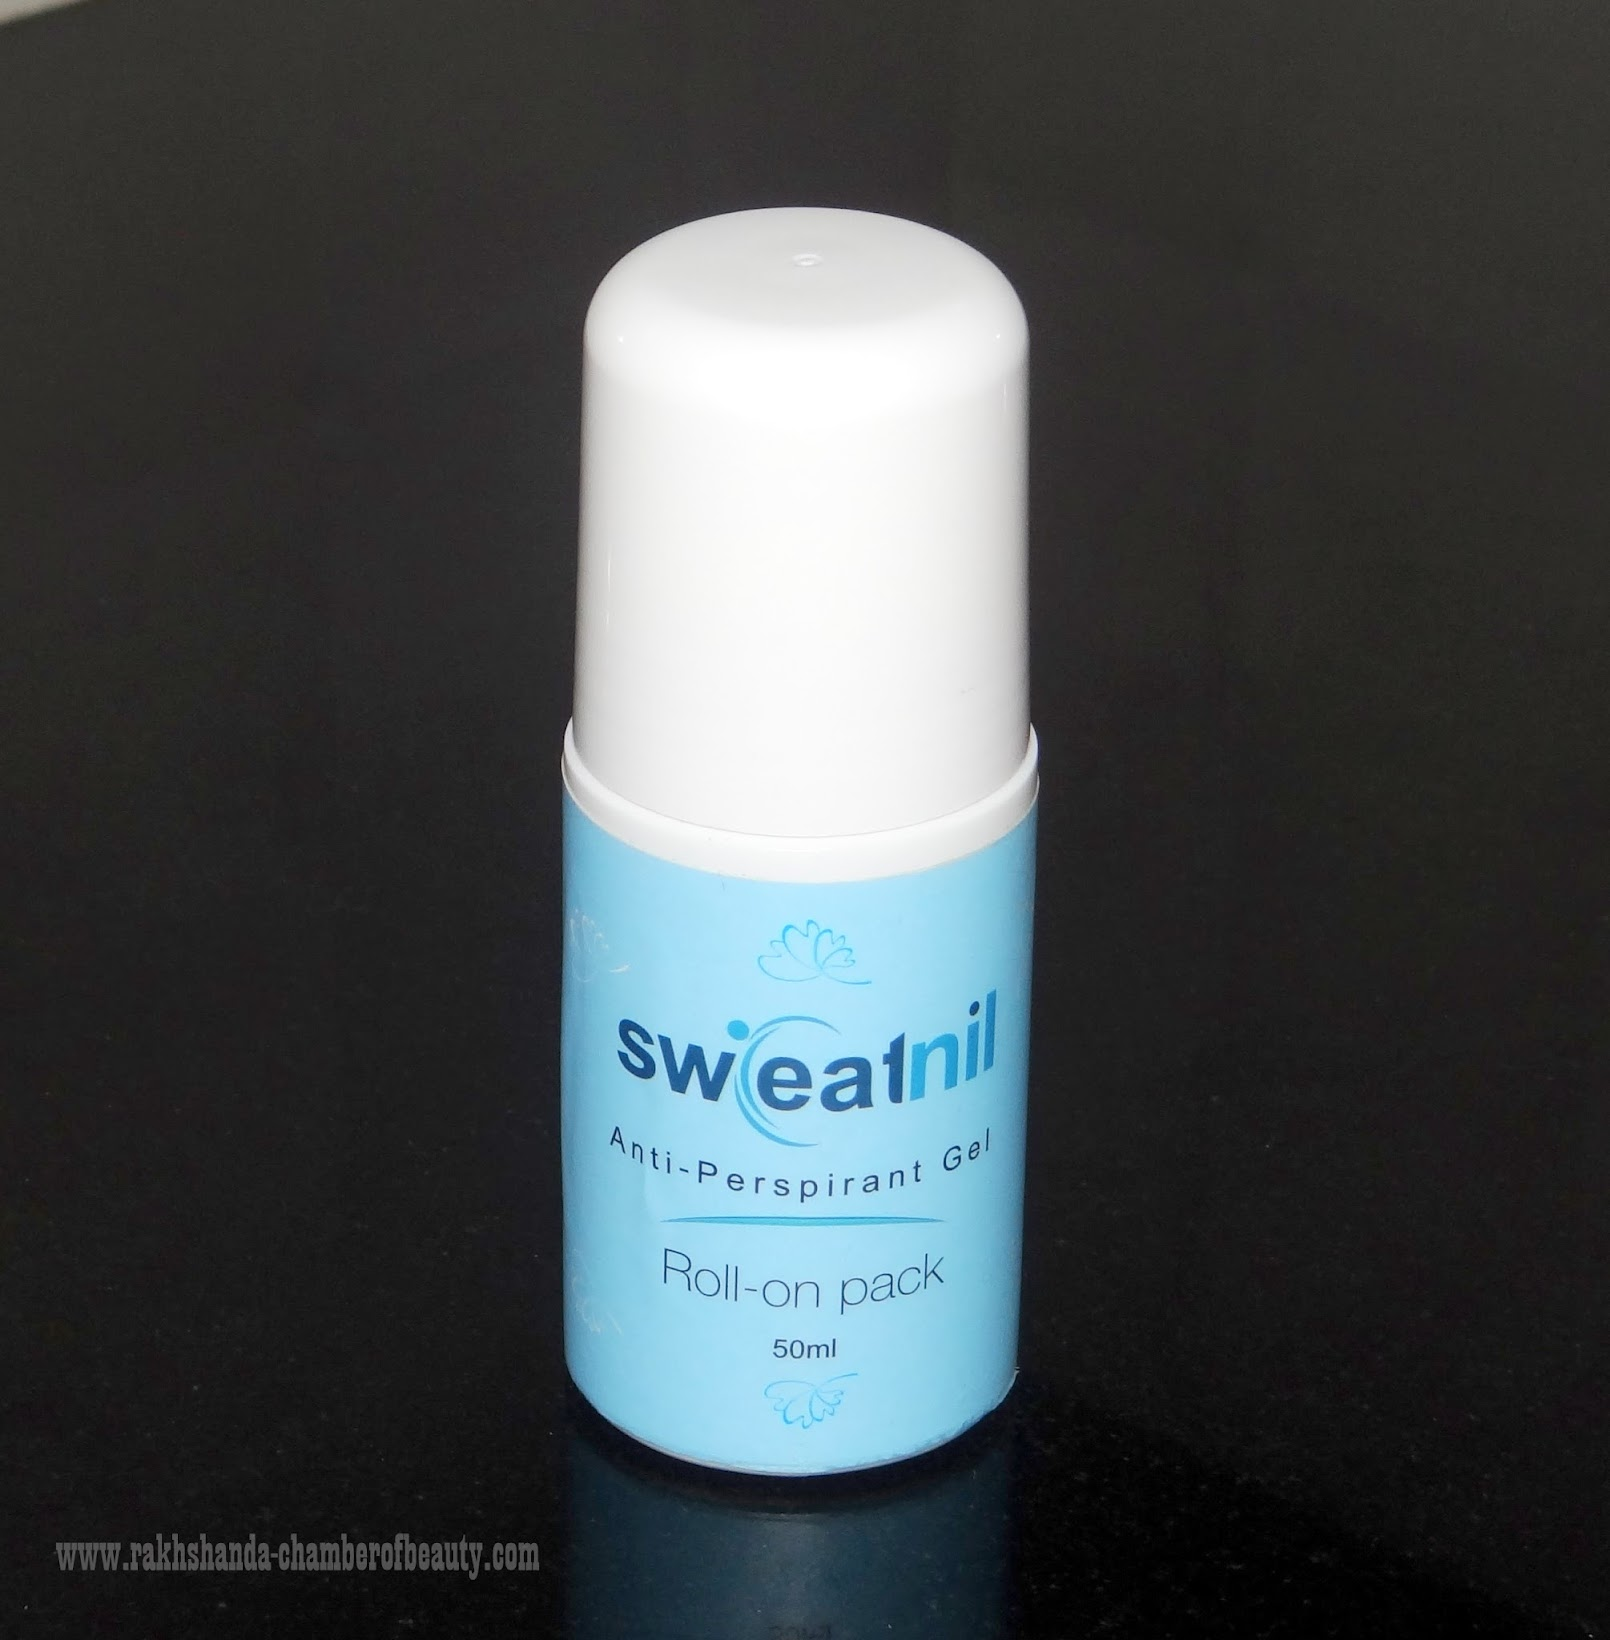 Sweatnil Antiperspirant Gel Roll on- review, photos & price in India, Ethicare Remedies, Indian beauty blogger, Chamber of Beauty